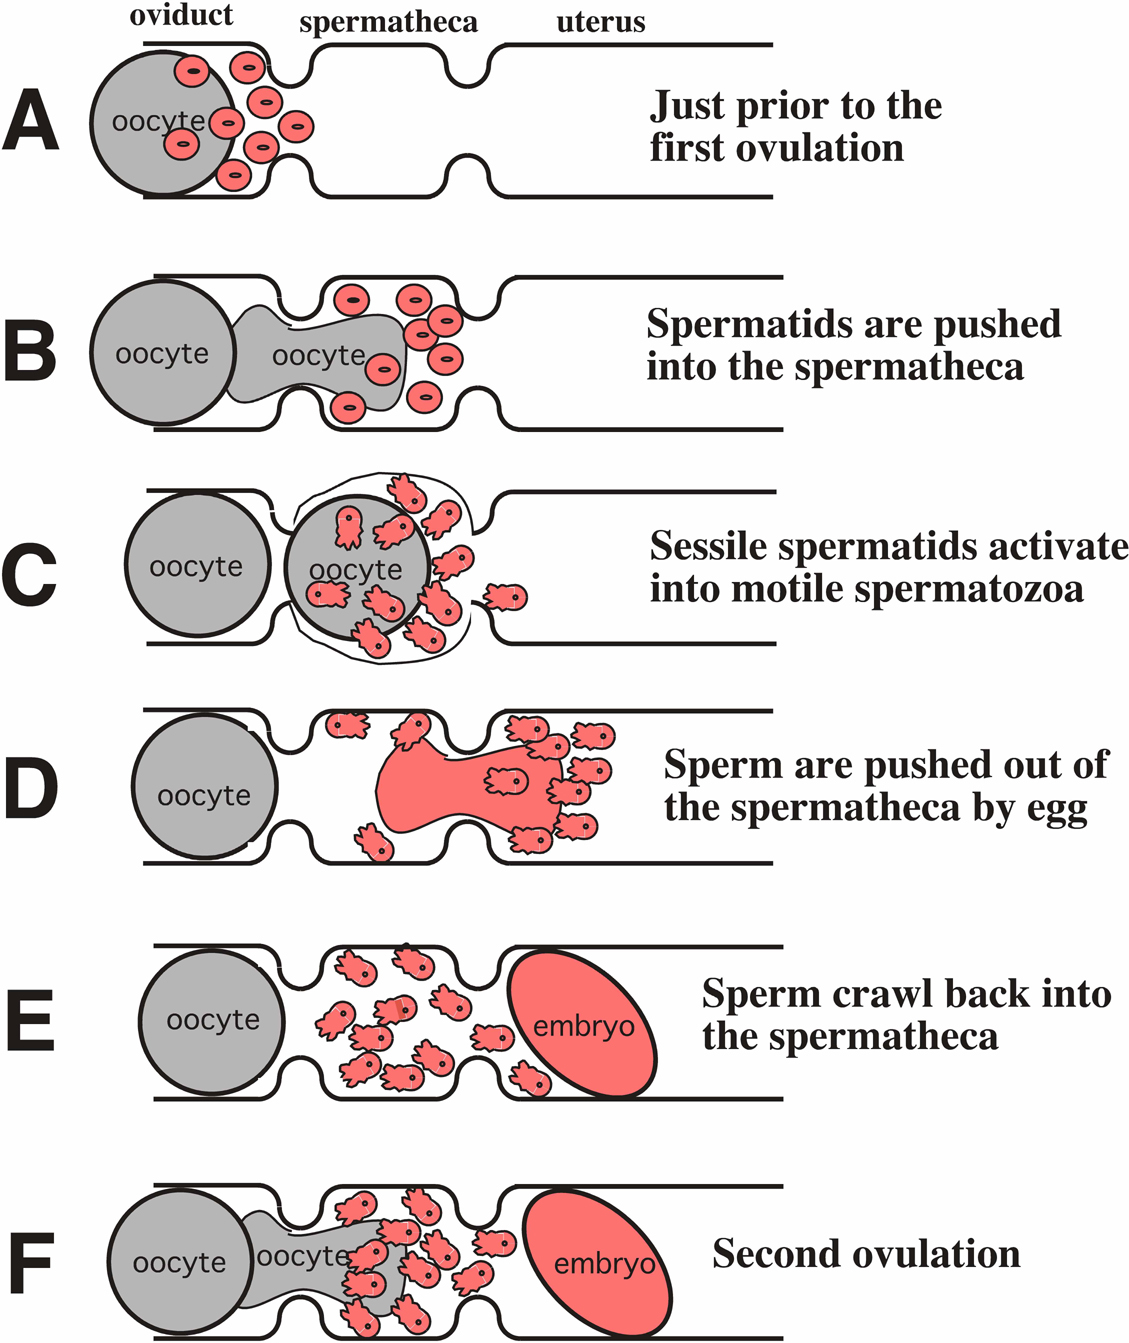 Oogenesis vs Spermatogenesis http://junk.home.pl/spermatogenesis-and-oogenesis-similarities&page=3